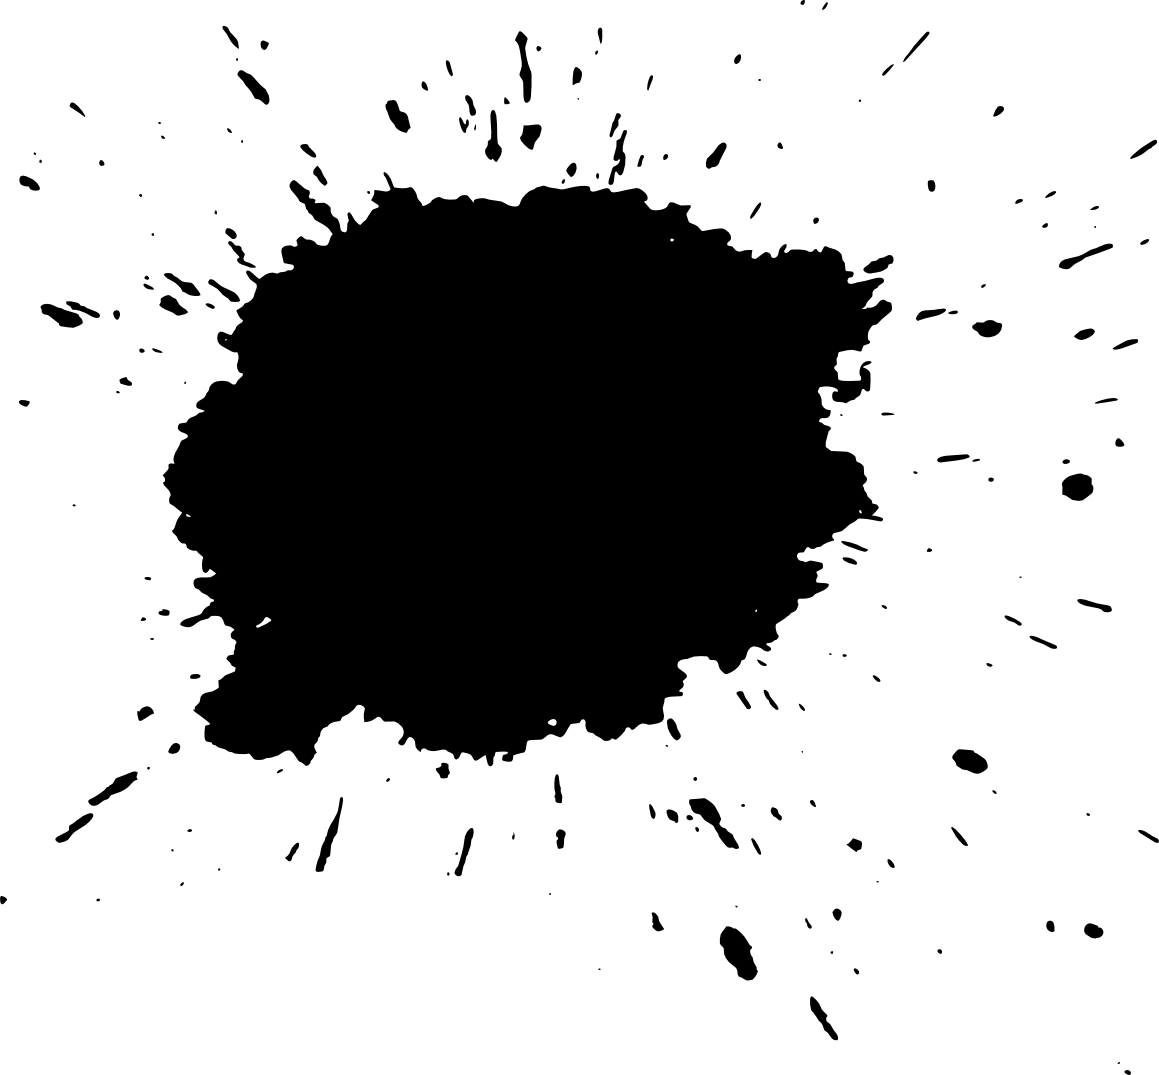 Black stain png. Ink transparent onlygfx com